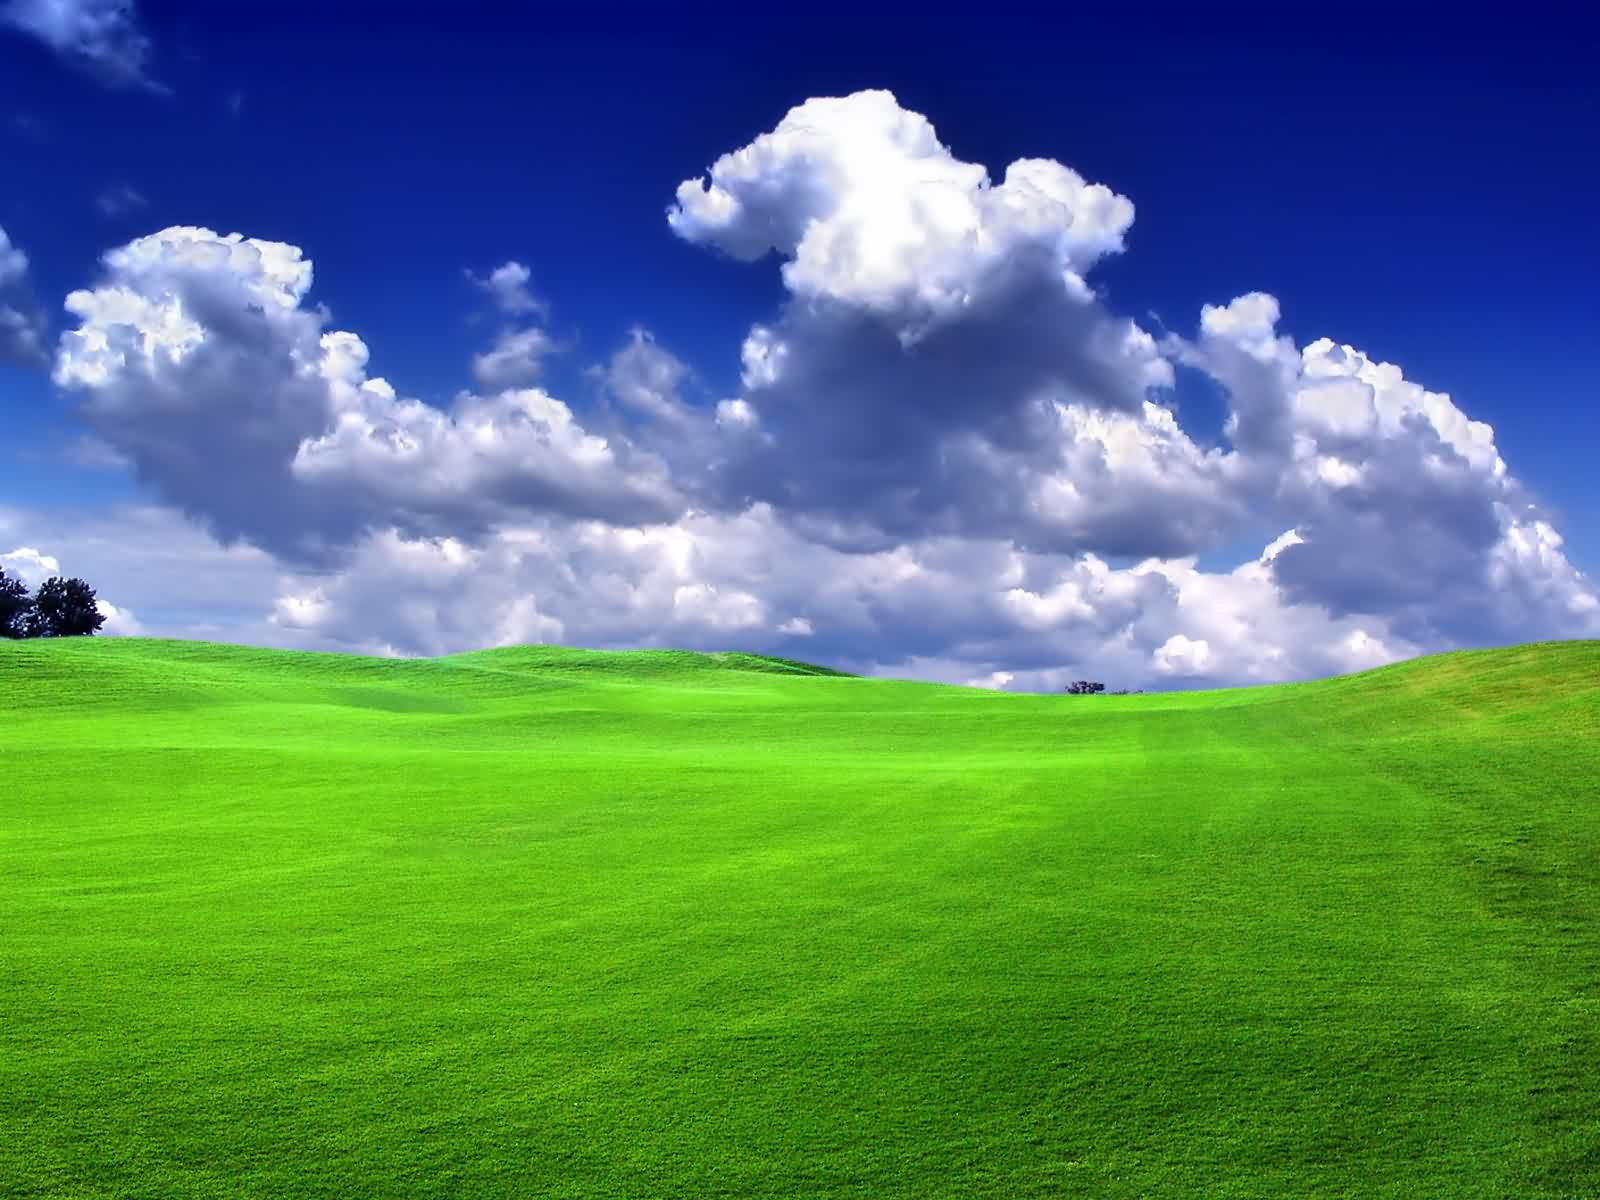 Green%2Bgrass%2BBlue%2Bsky%2Bcloud%2Bsketches%2Bof%2Bnature%2Bwallpapers Top 10 nature wallpapers